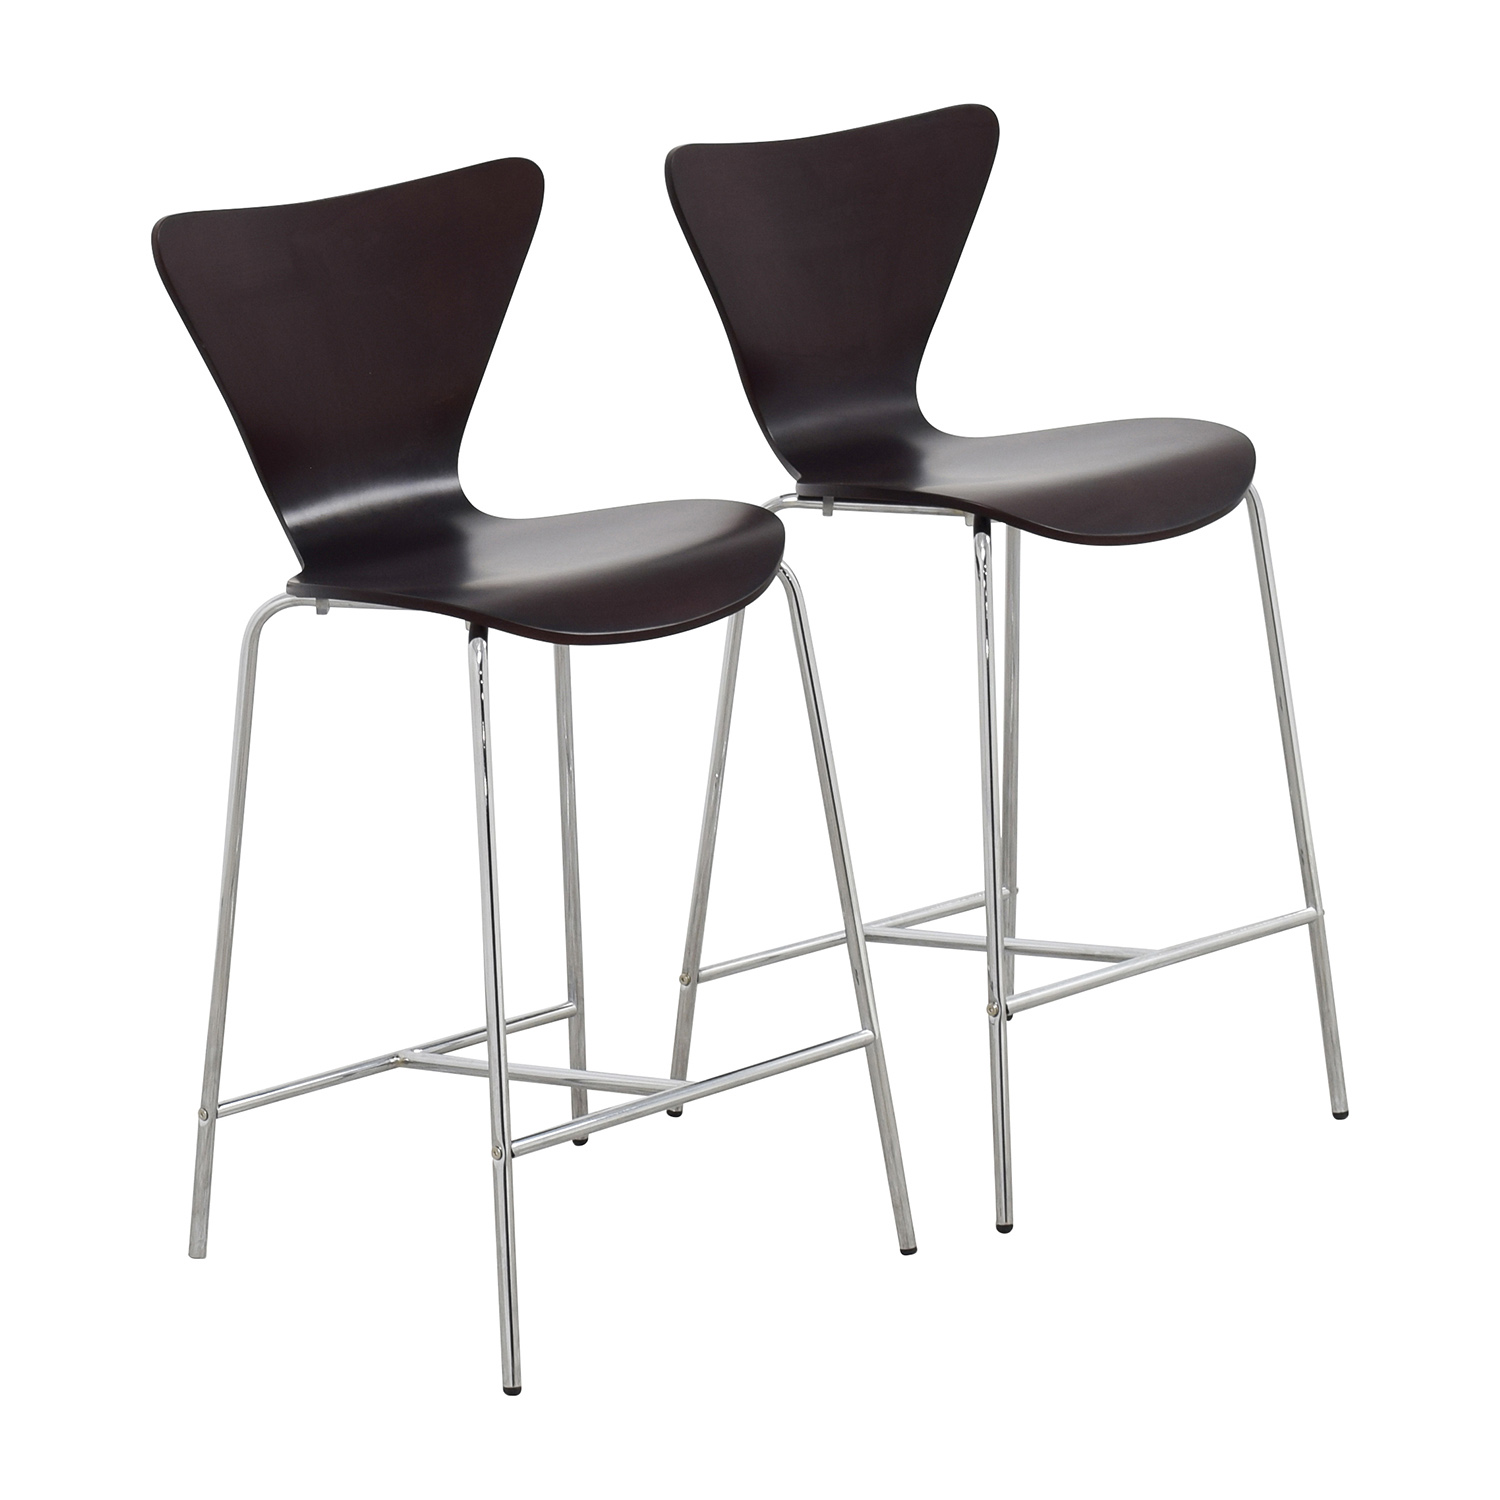 ... InMod InMod Tendy C Counter Chair Wenge Dimensions ...